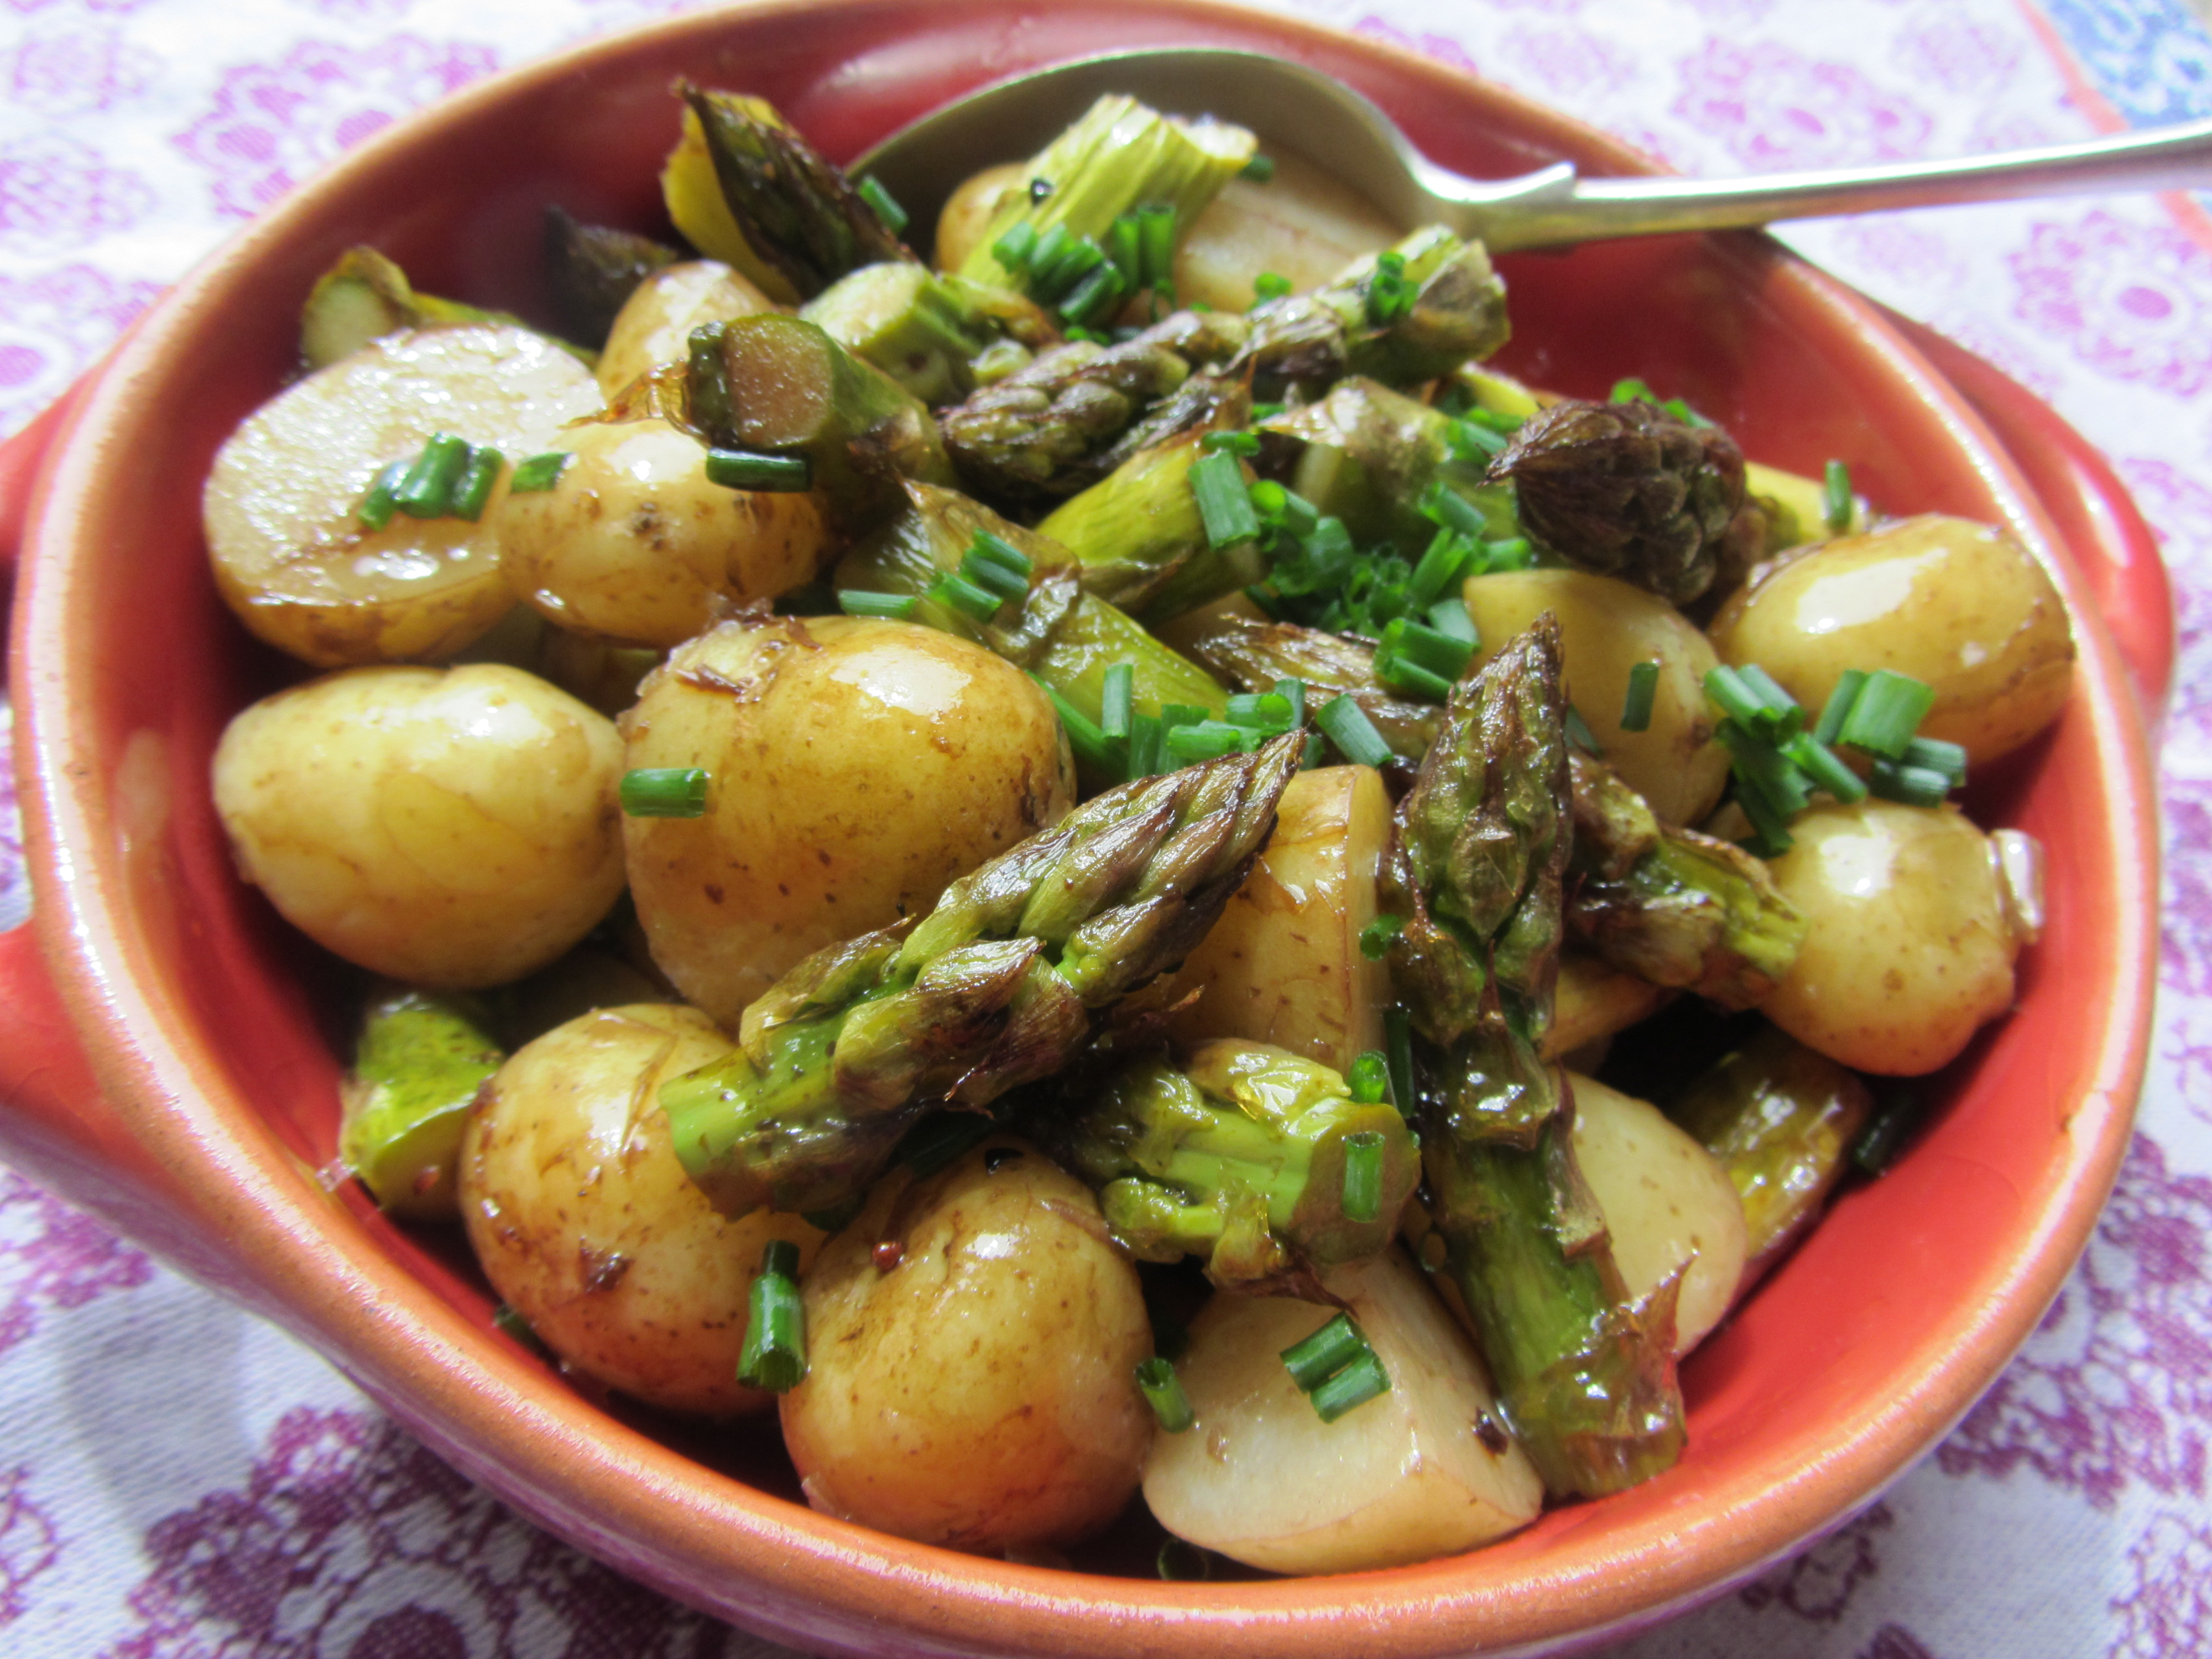 Roasted Asparagus and New Potato Salad | Lucy's Friendly Foods